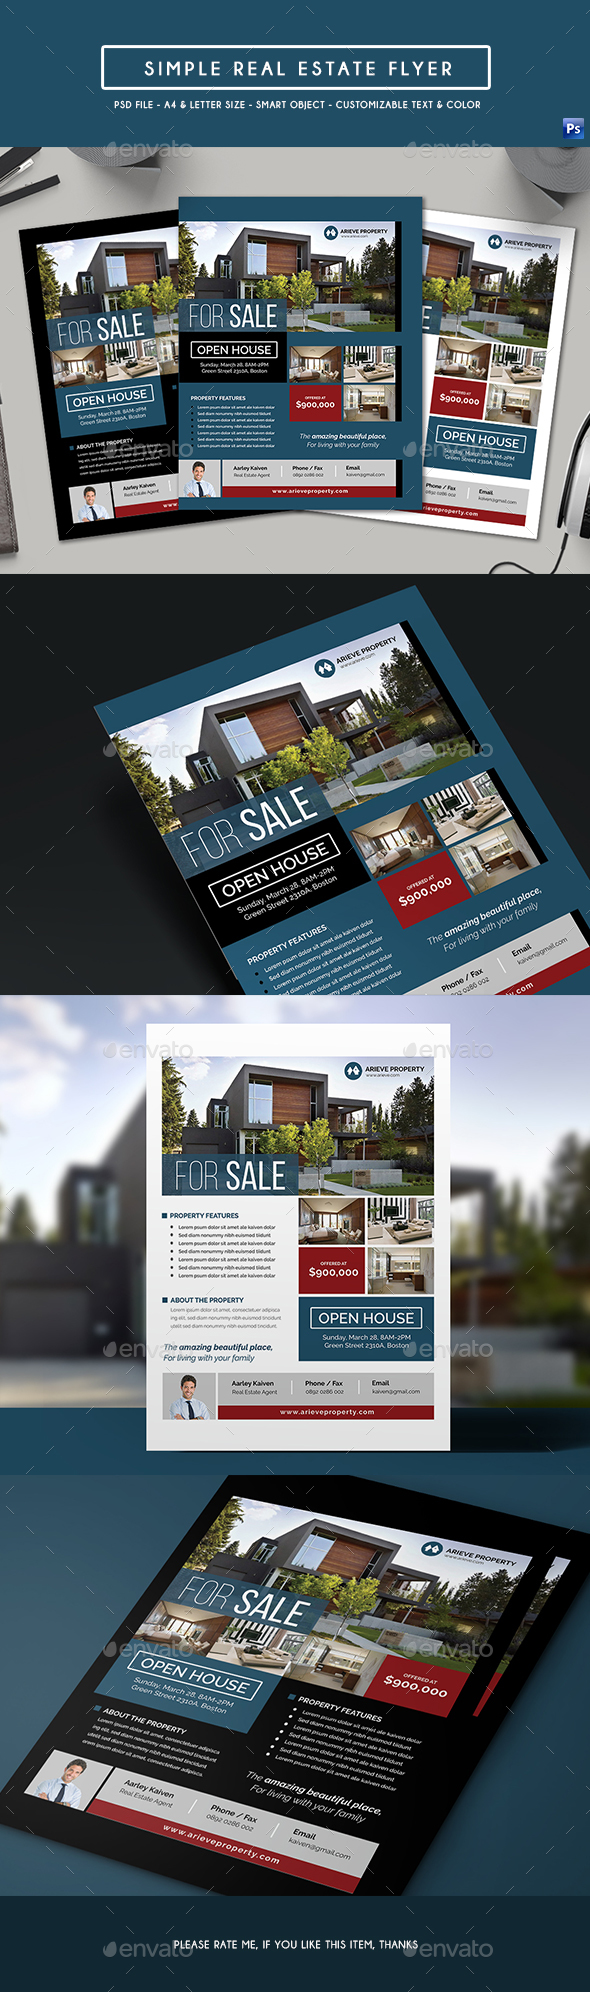 Simple Real Estate Flyer - Corporate Flyers